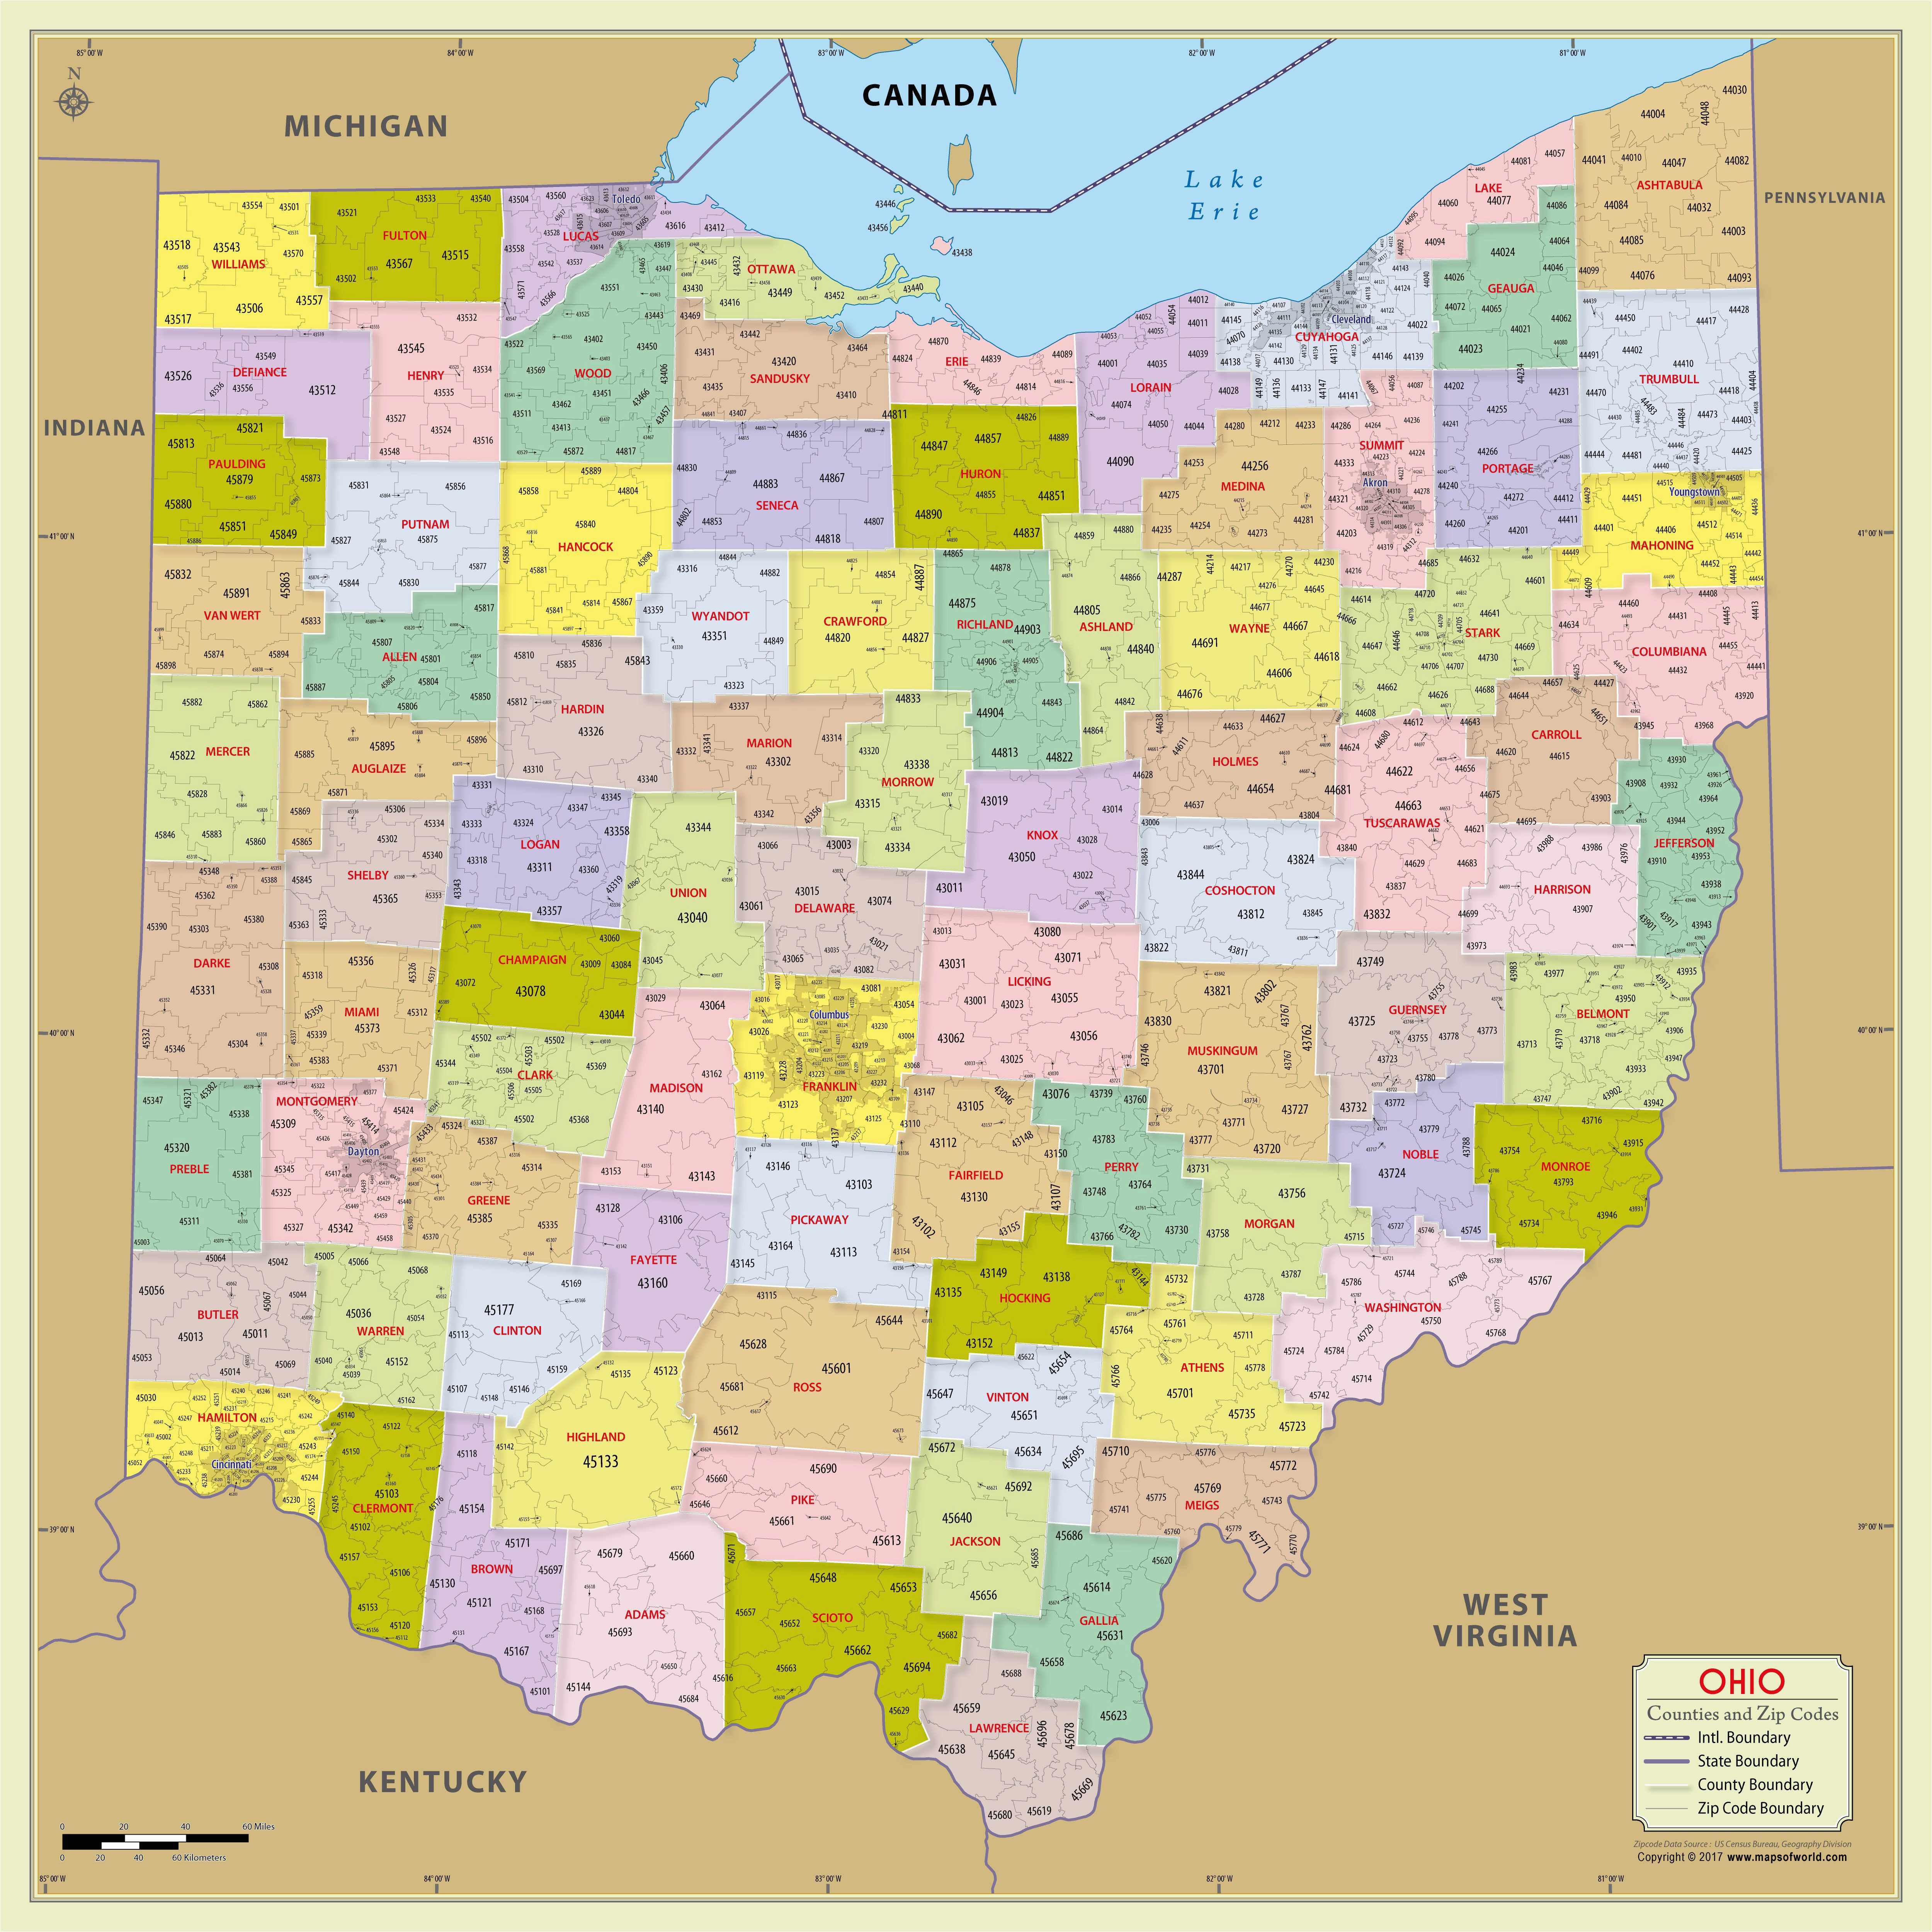 Ohio County Map with Cities Map Of Illinois and Indiana ... on map of illinois cities, usa road maps with states and cities, illinois and iowa state map, illinois map springfield il, map of tennessee counties and cities, indiana cities, pa cities, midwest map with cities, illinois river map, map of kansas towns and cities, map of maryland counties and cities, chicago and surrounding cities, west virginia map counties and cities, us interstate highway map with cities, illinois map with all cities, rockford illinois map with cities, illinois streator il map, map of europe with capital cities, il state map with cities, map of ca cities,